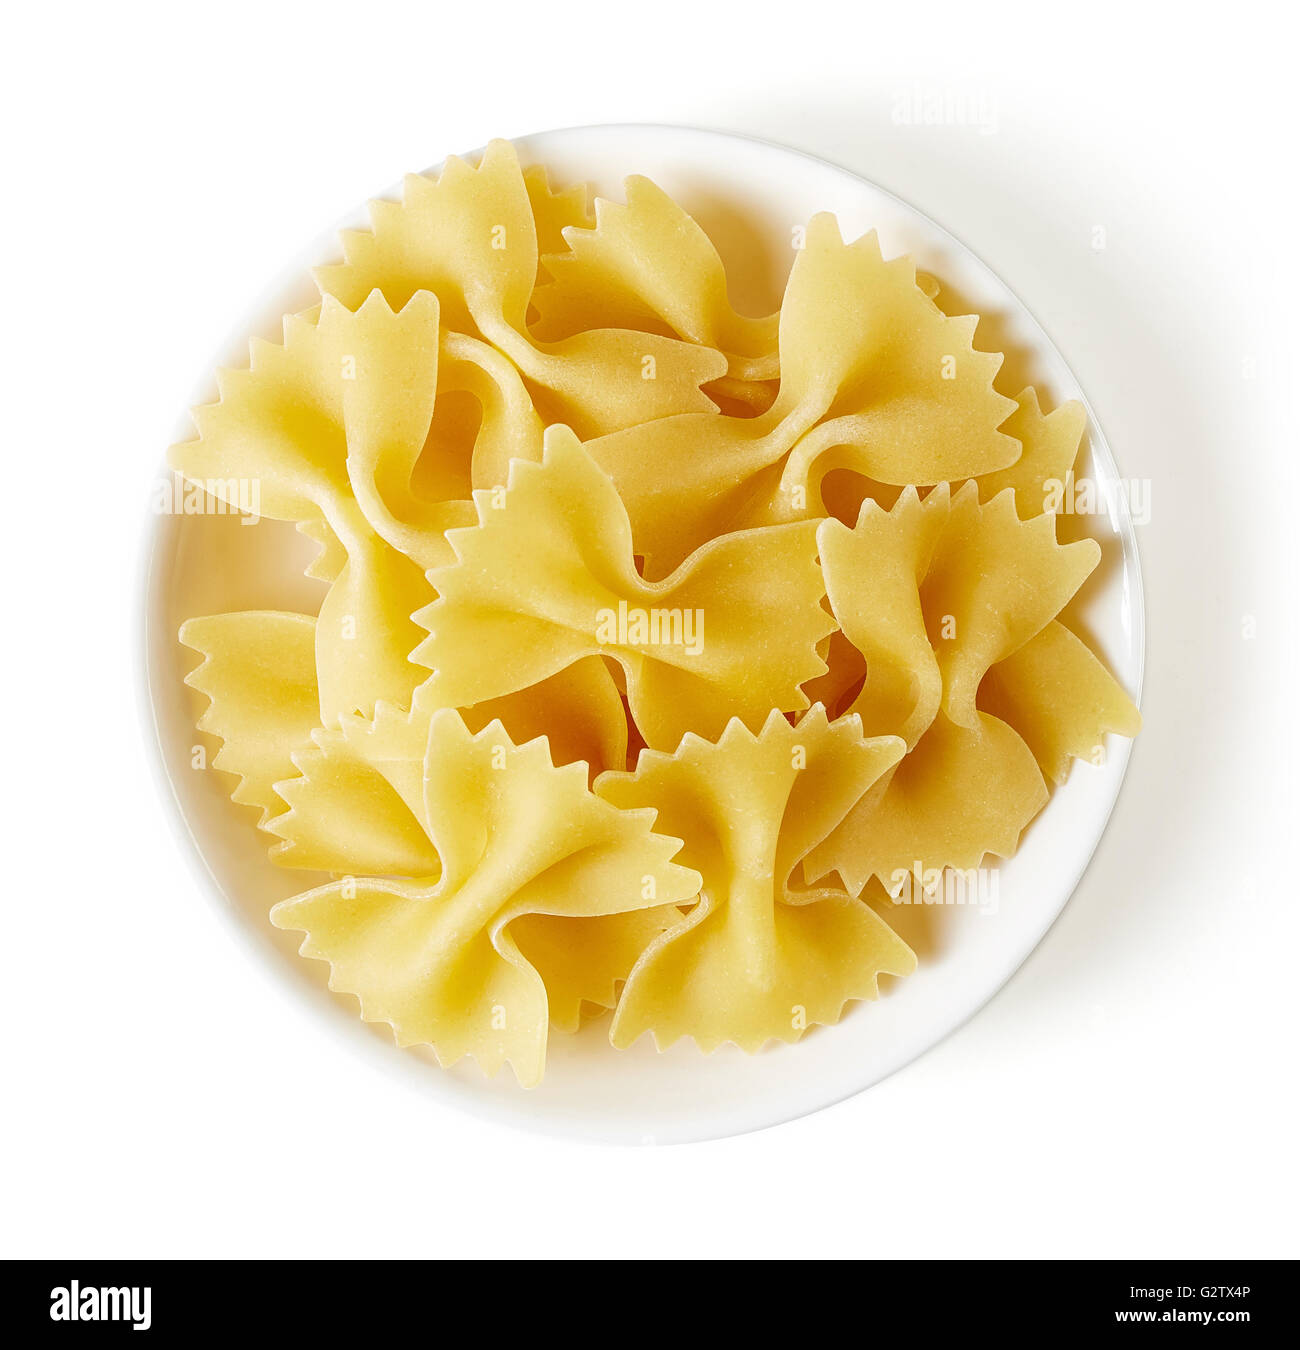 bow tie pasta in bowl, isolated on white background, top view - Stock Image